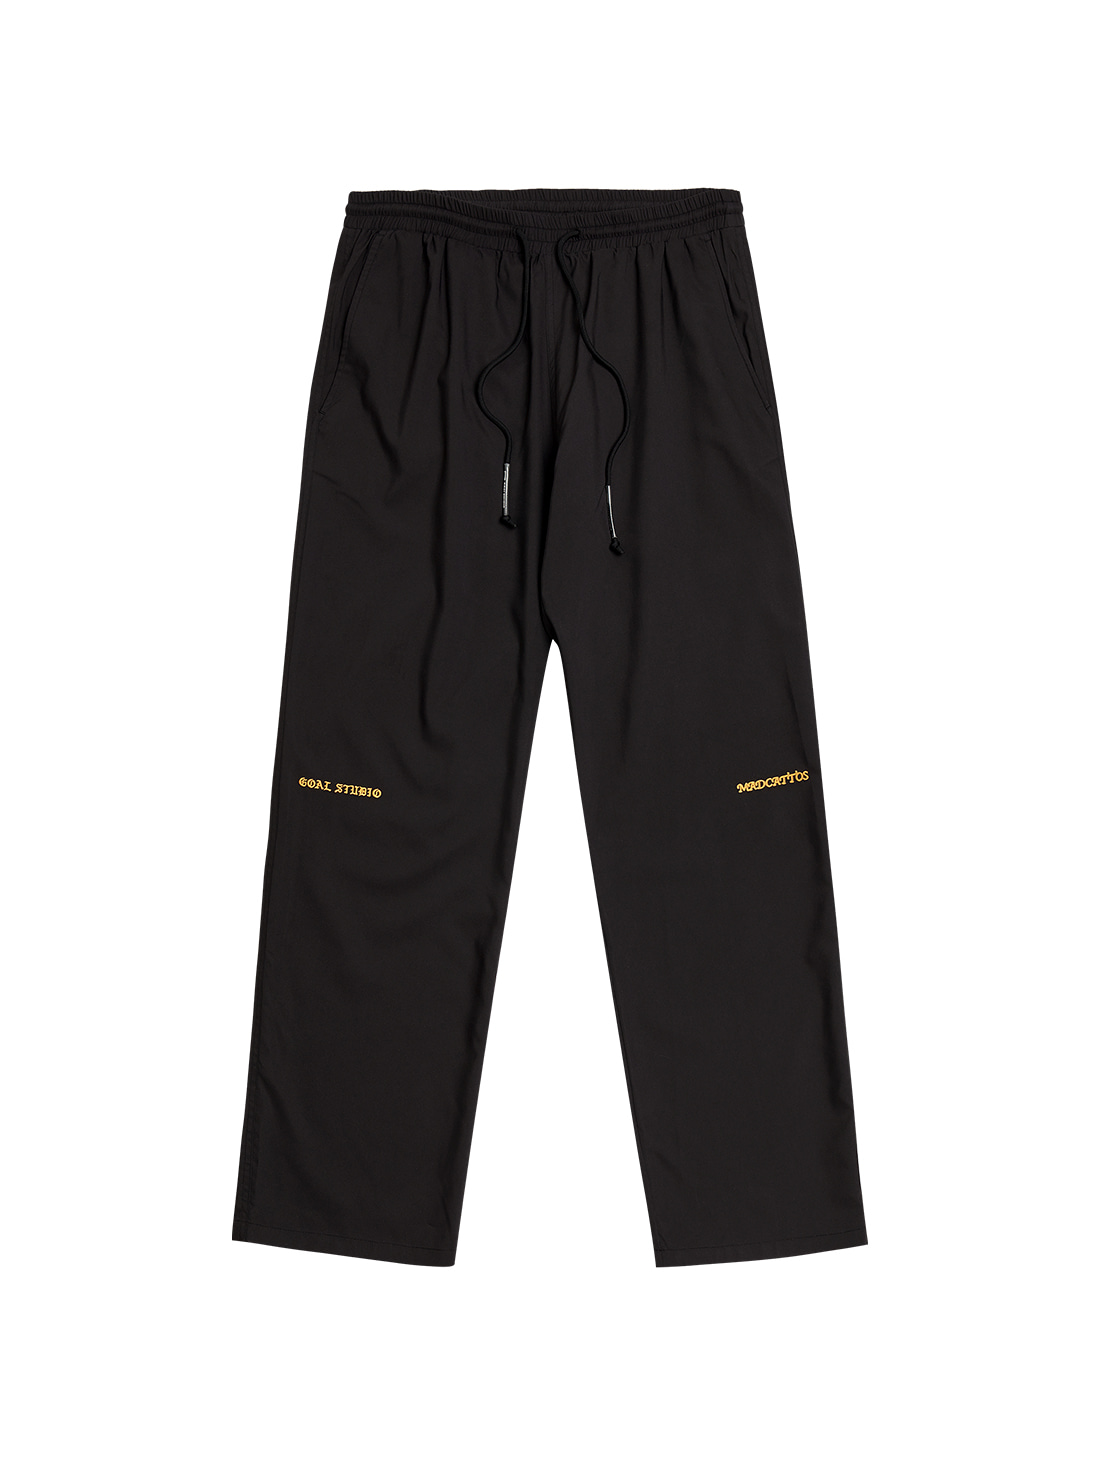 MC WOVEN PANTS - BLACK